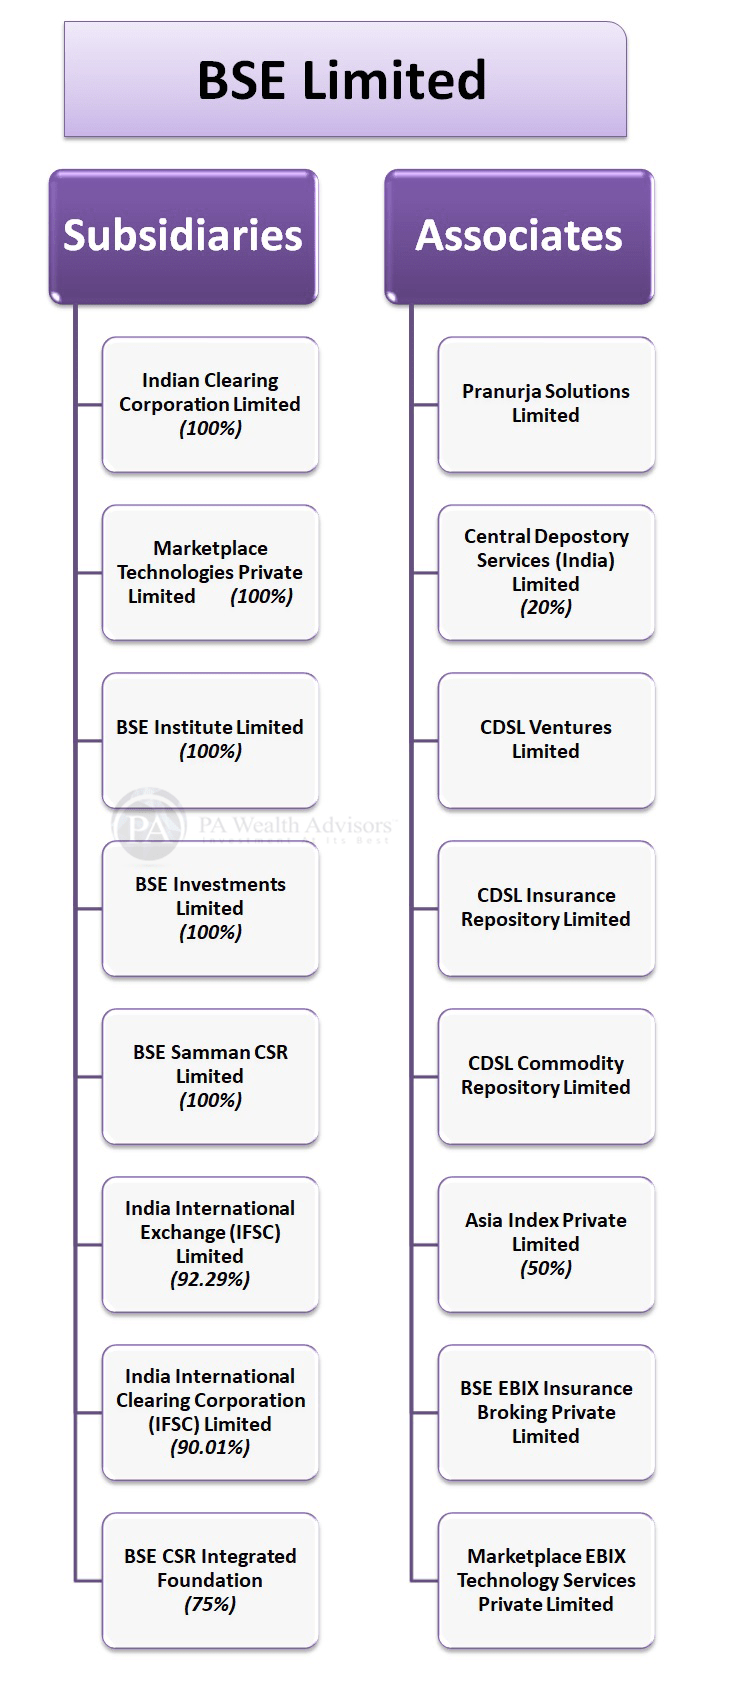 BSE stock research update with details of group structure